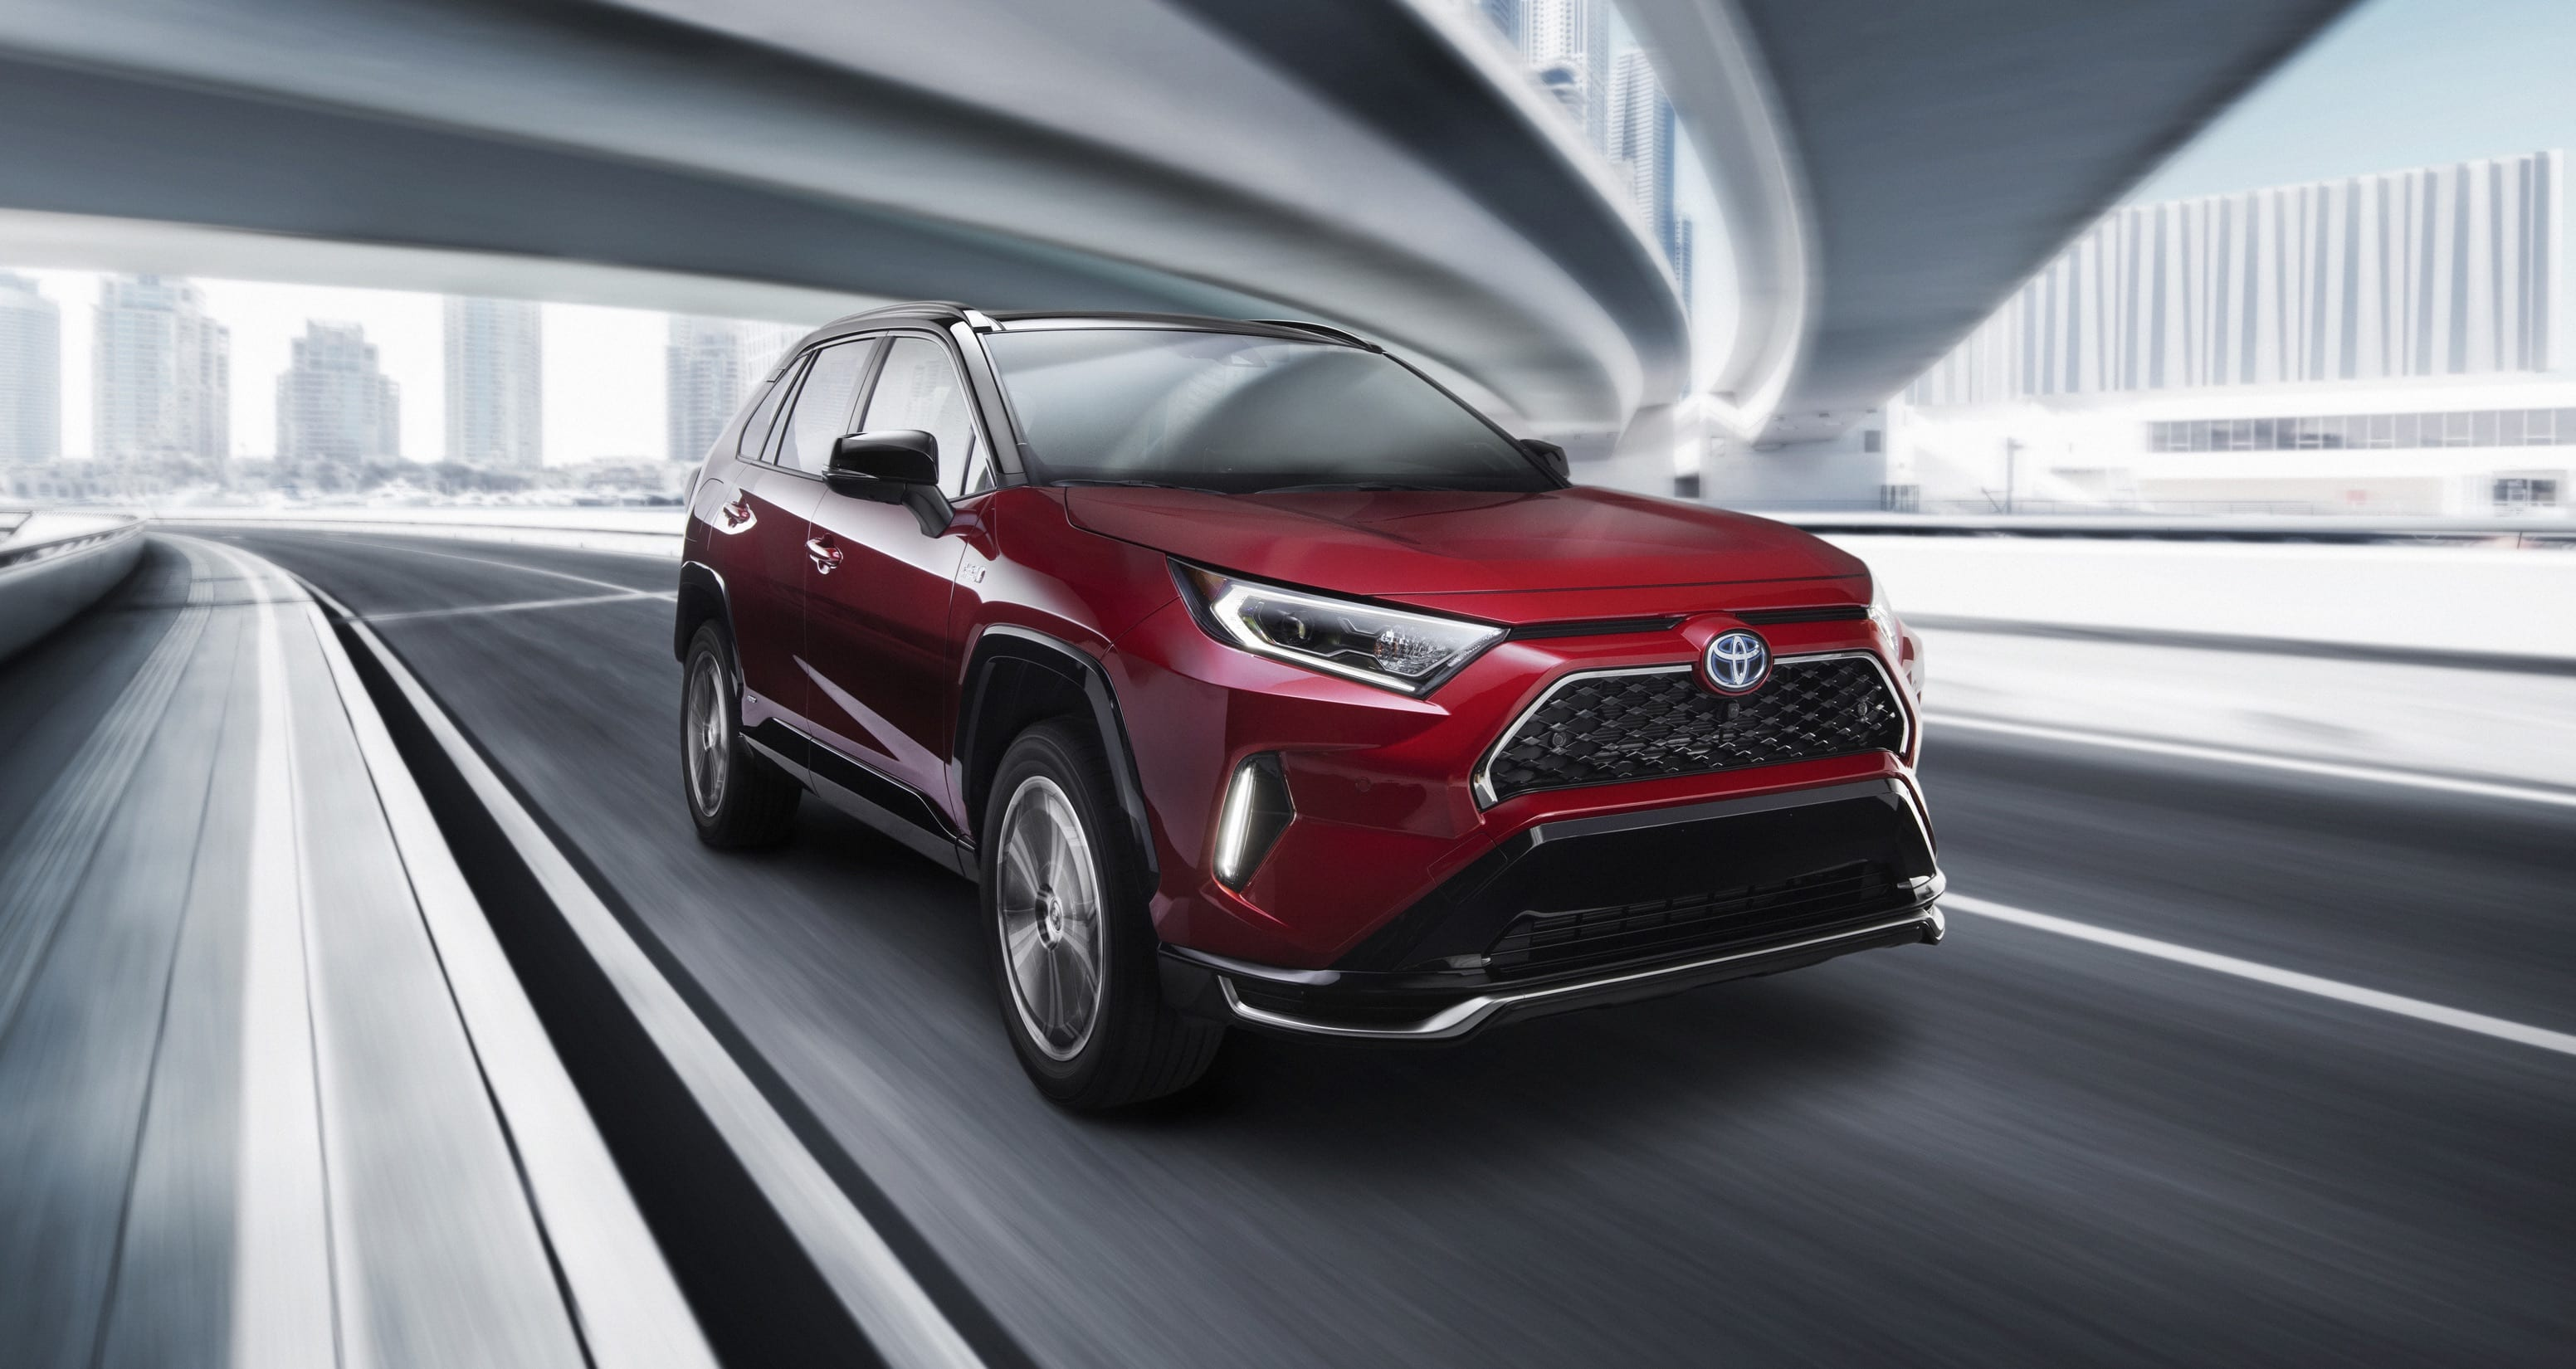 Toyota RAV4 passes 10 million sales globally, still a long wait for hybrids